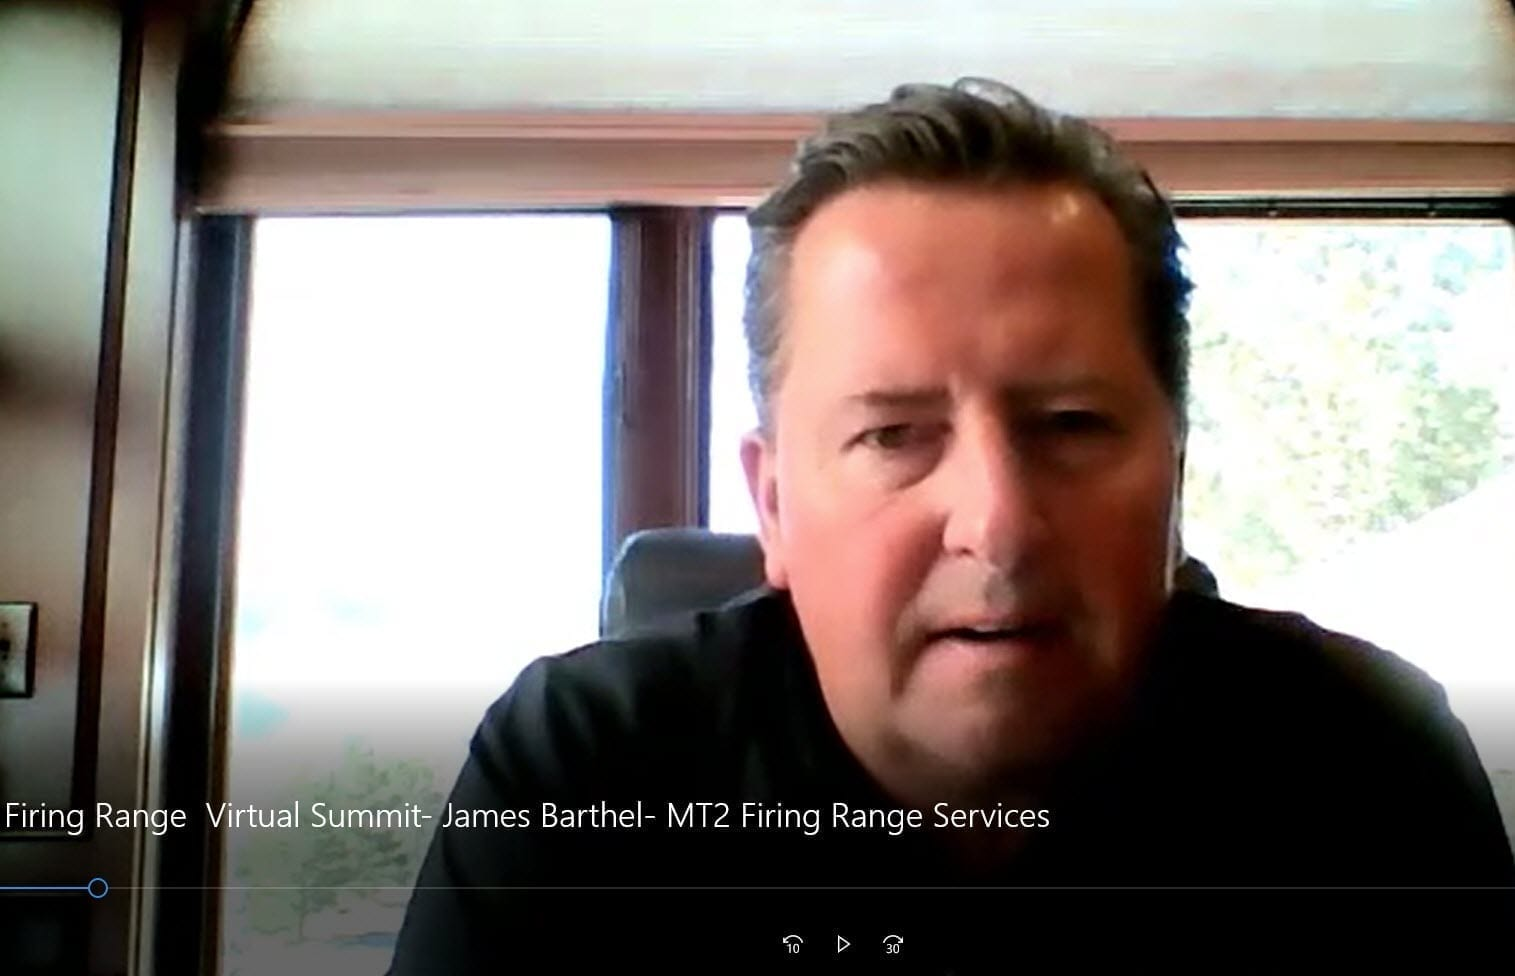 Interview With MT2 Firing Range Services CEO, James Barthel About Firing Range Construction and Design-Build Services